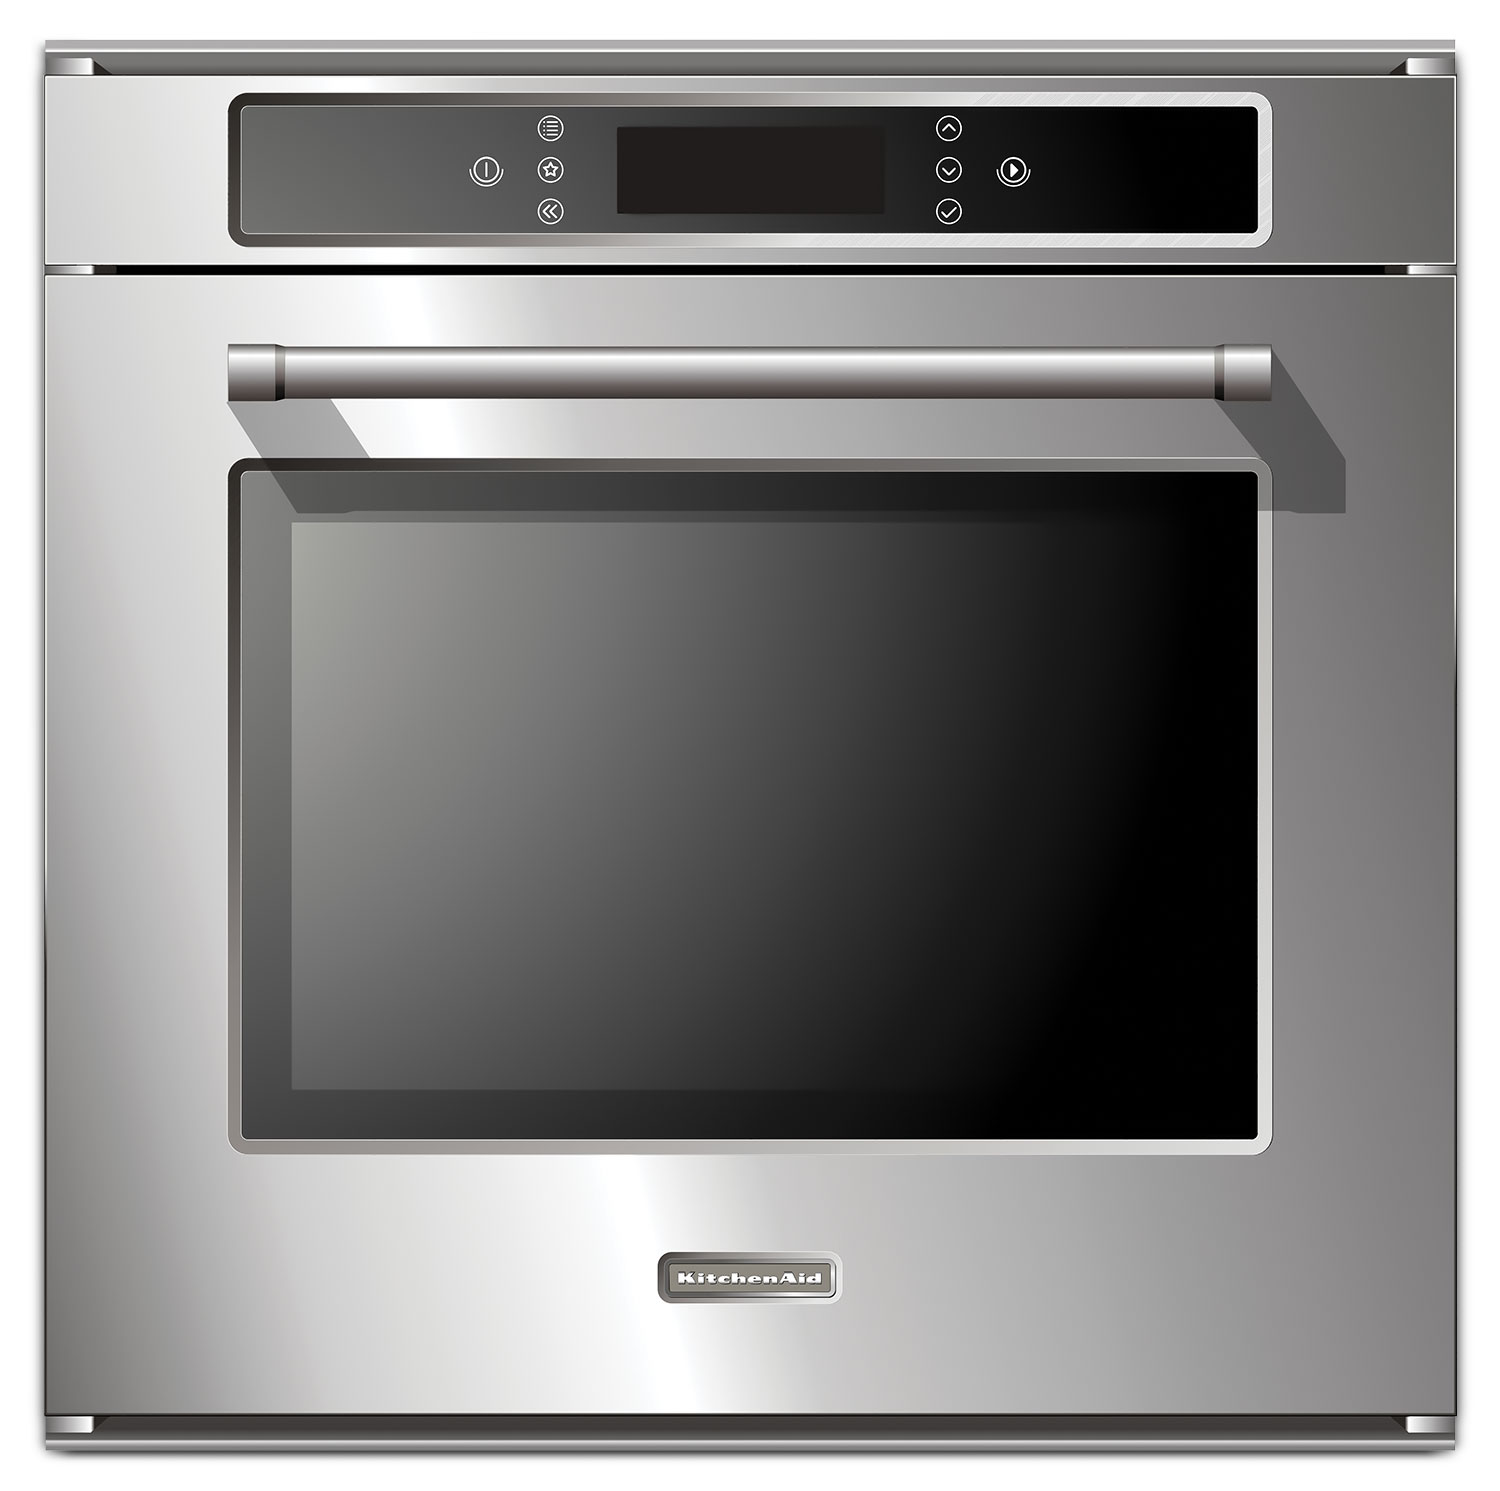 Cooking Products - KitchenAid Stainless Steel Convection Wall Oven (2.6 Cu. Ft.) - KEBC149BSS